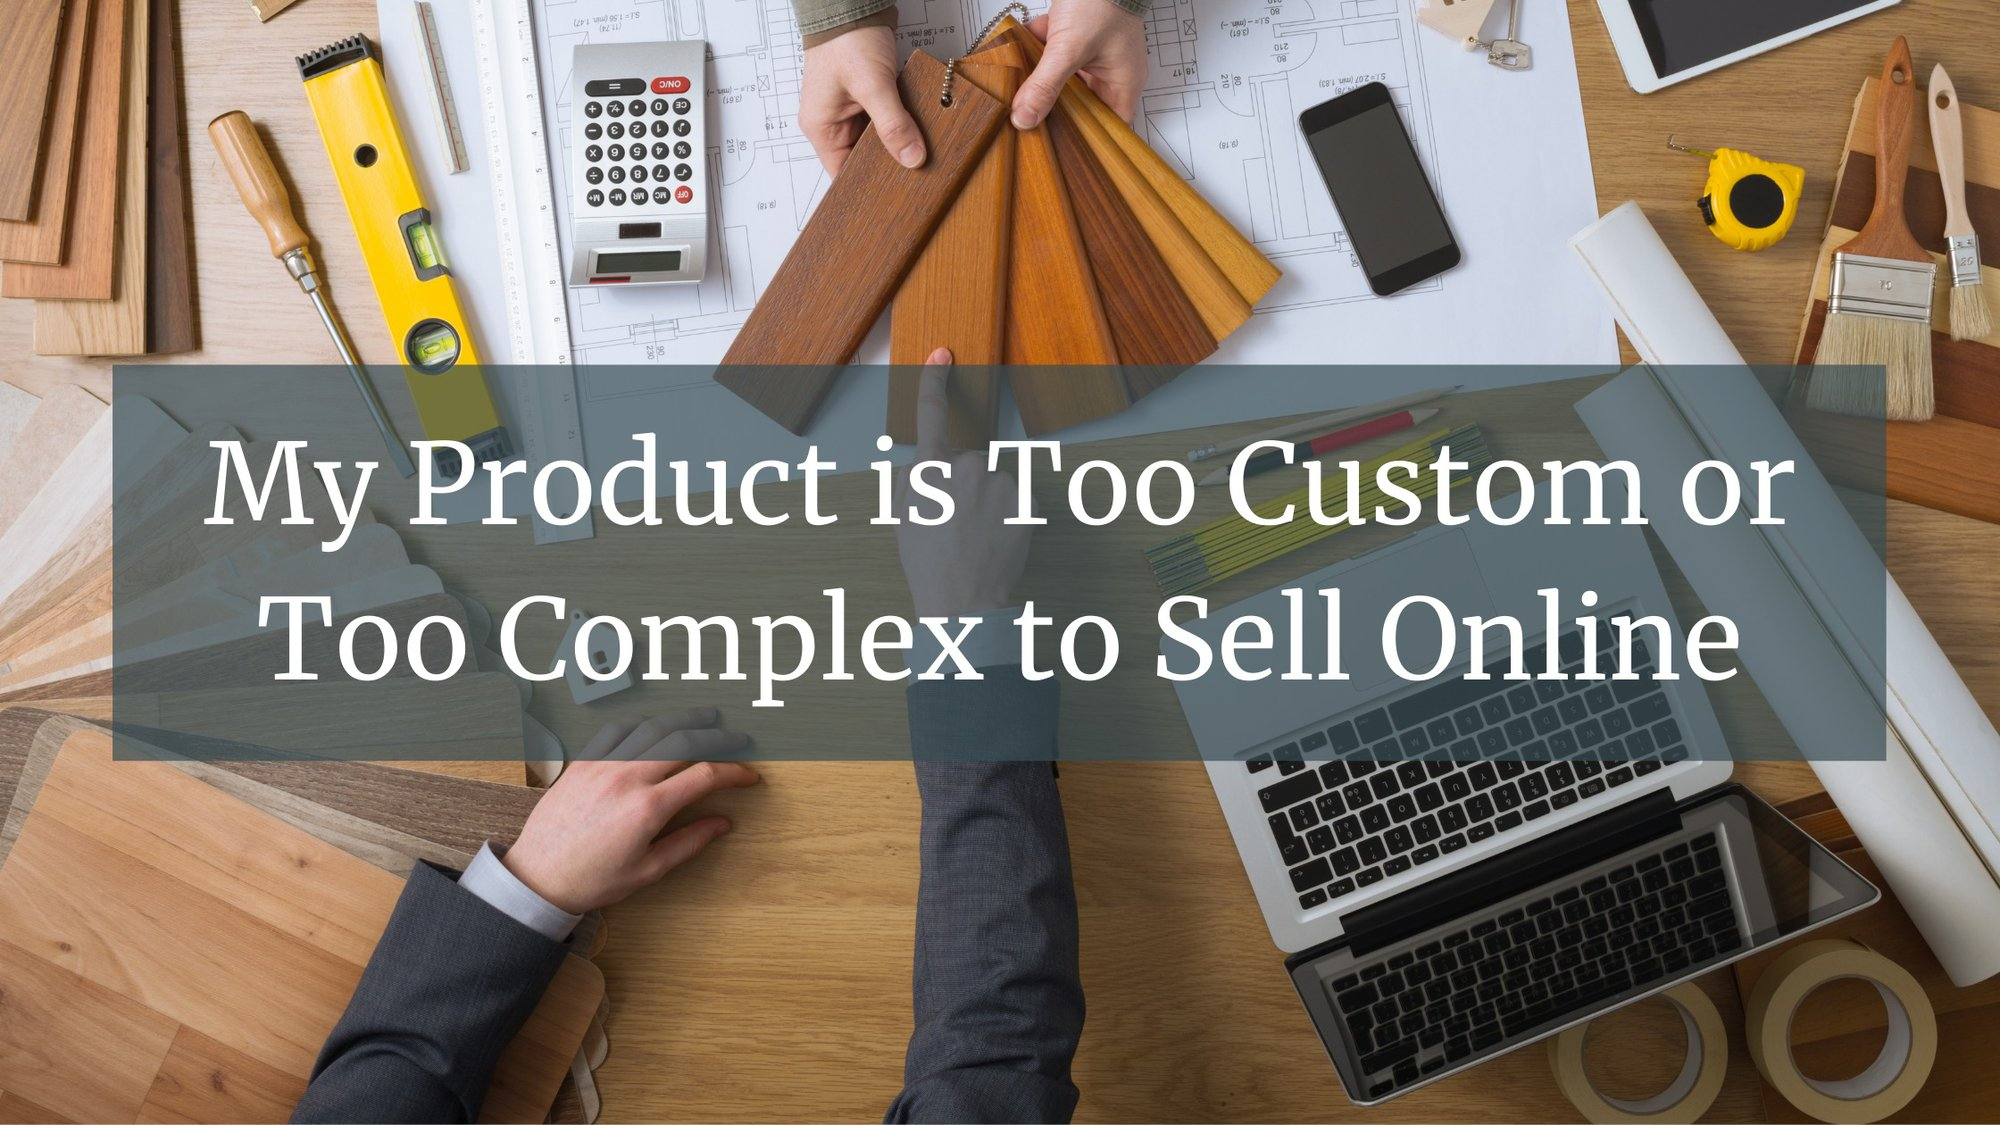 B2B eCommerce Series Part 1: Selling Complex Products Online